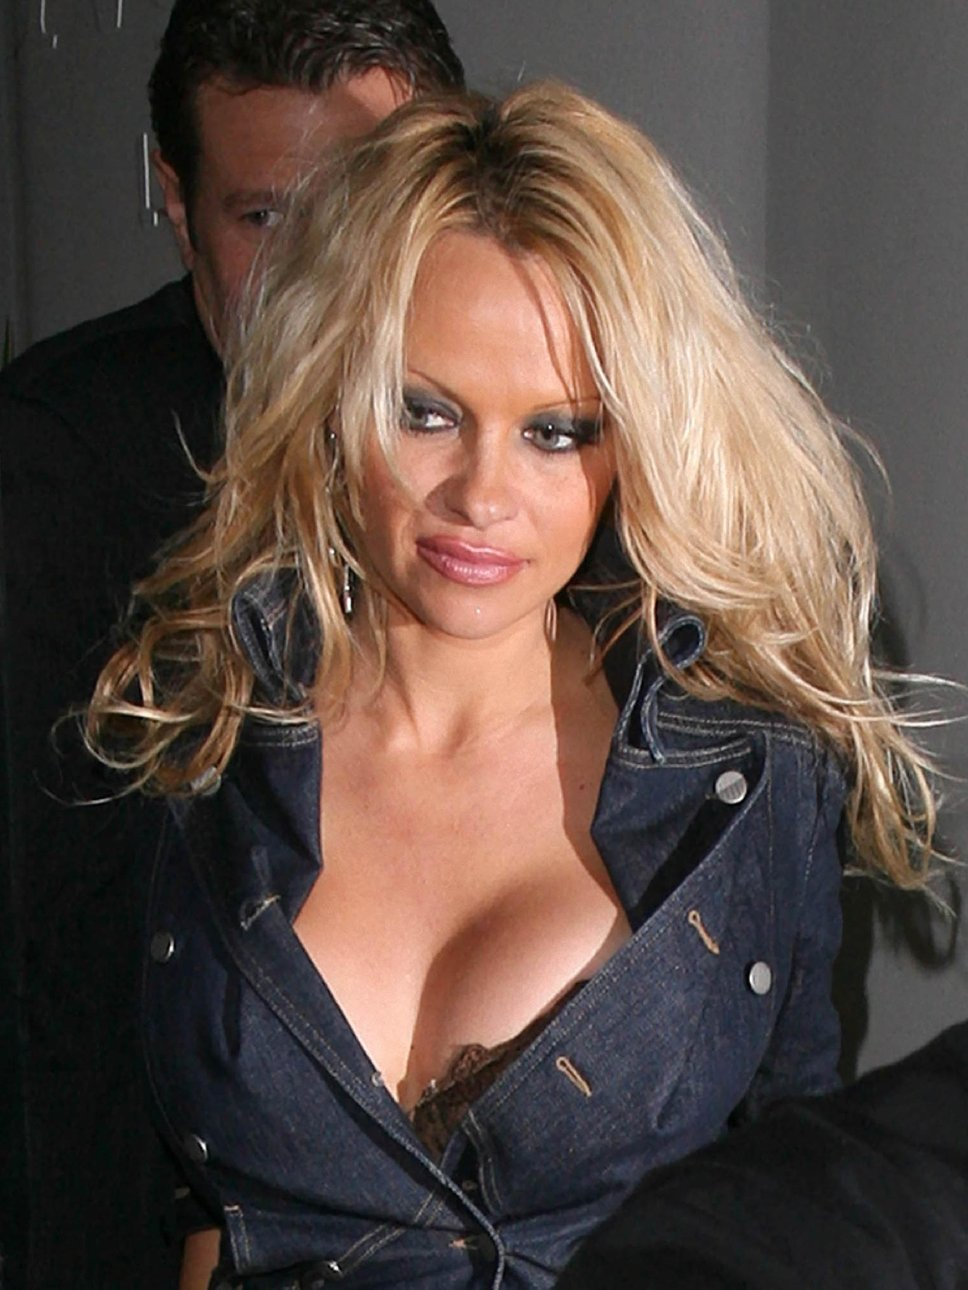 pamela anderson Sex tape veteran and frequent Playboy Playmate Pamela Anderson is ...